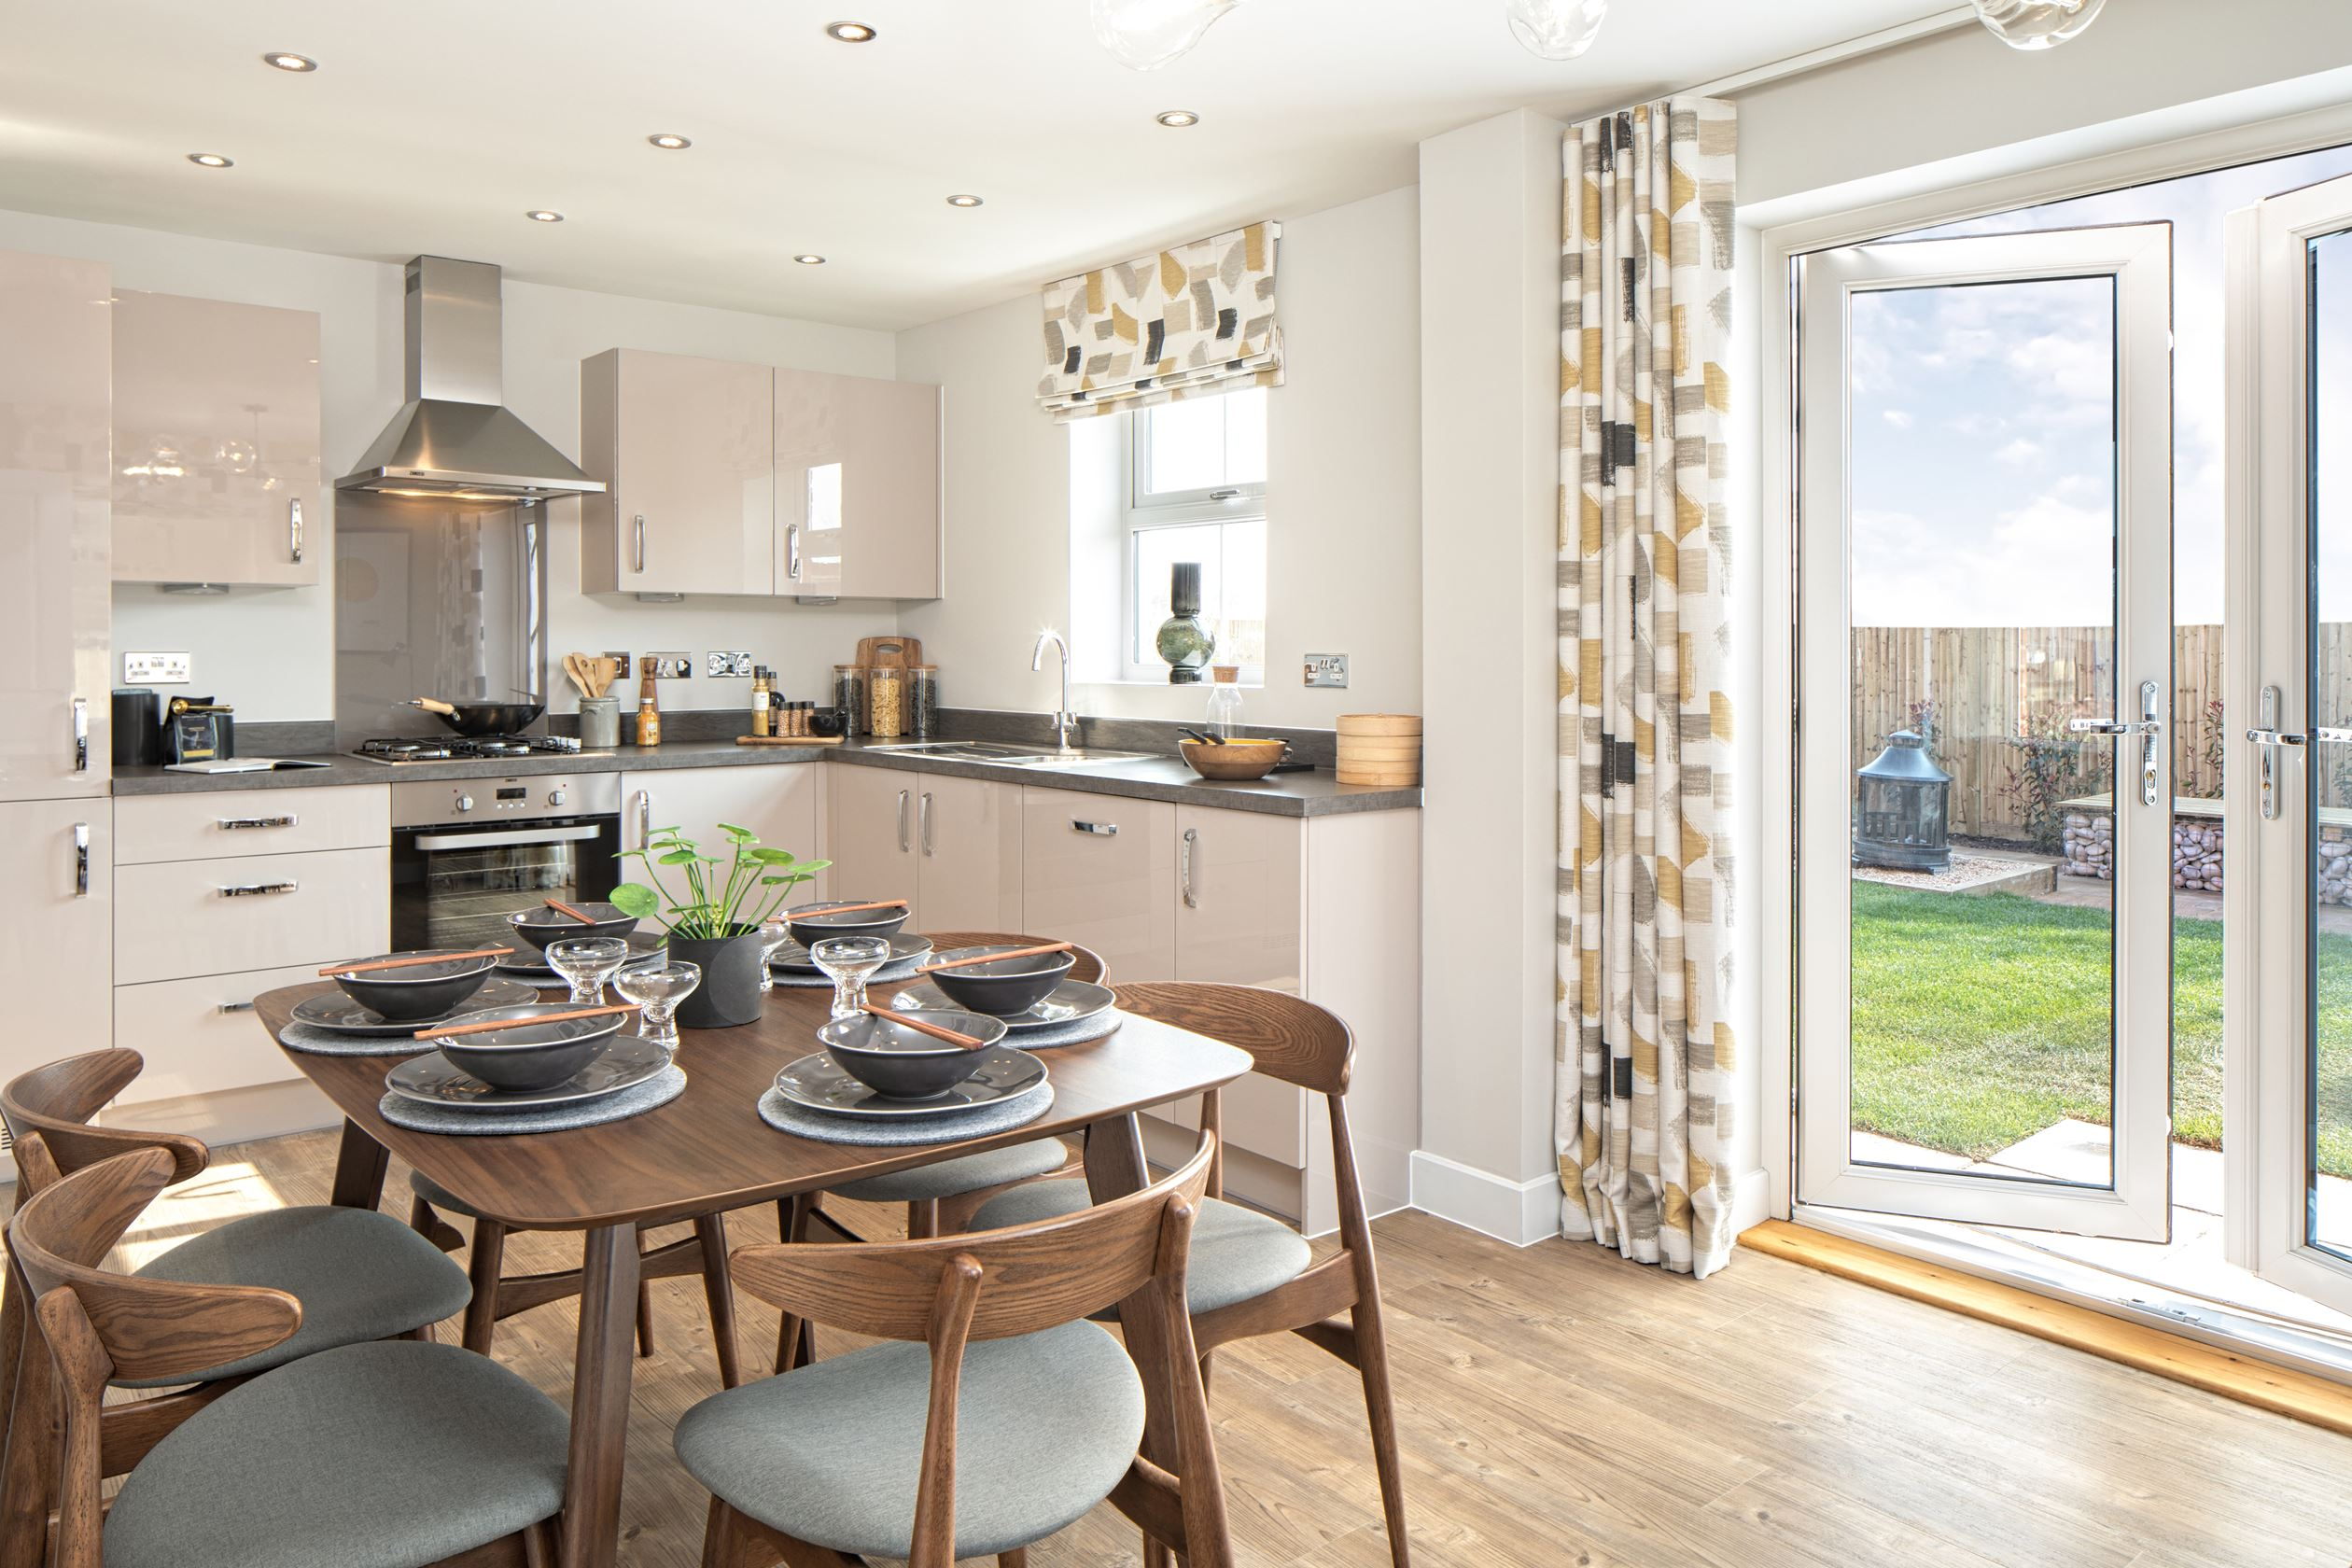 Kitchen/dining area and french doors to garden of the Hadley 3 bedroom home